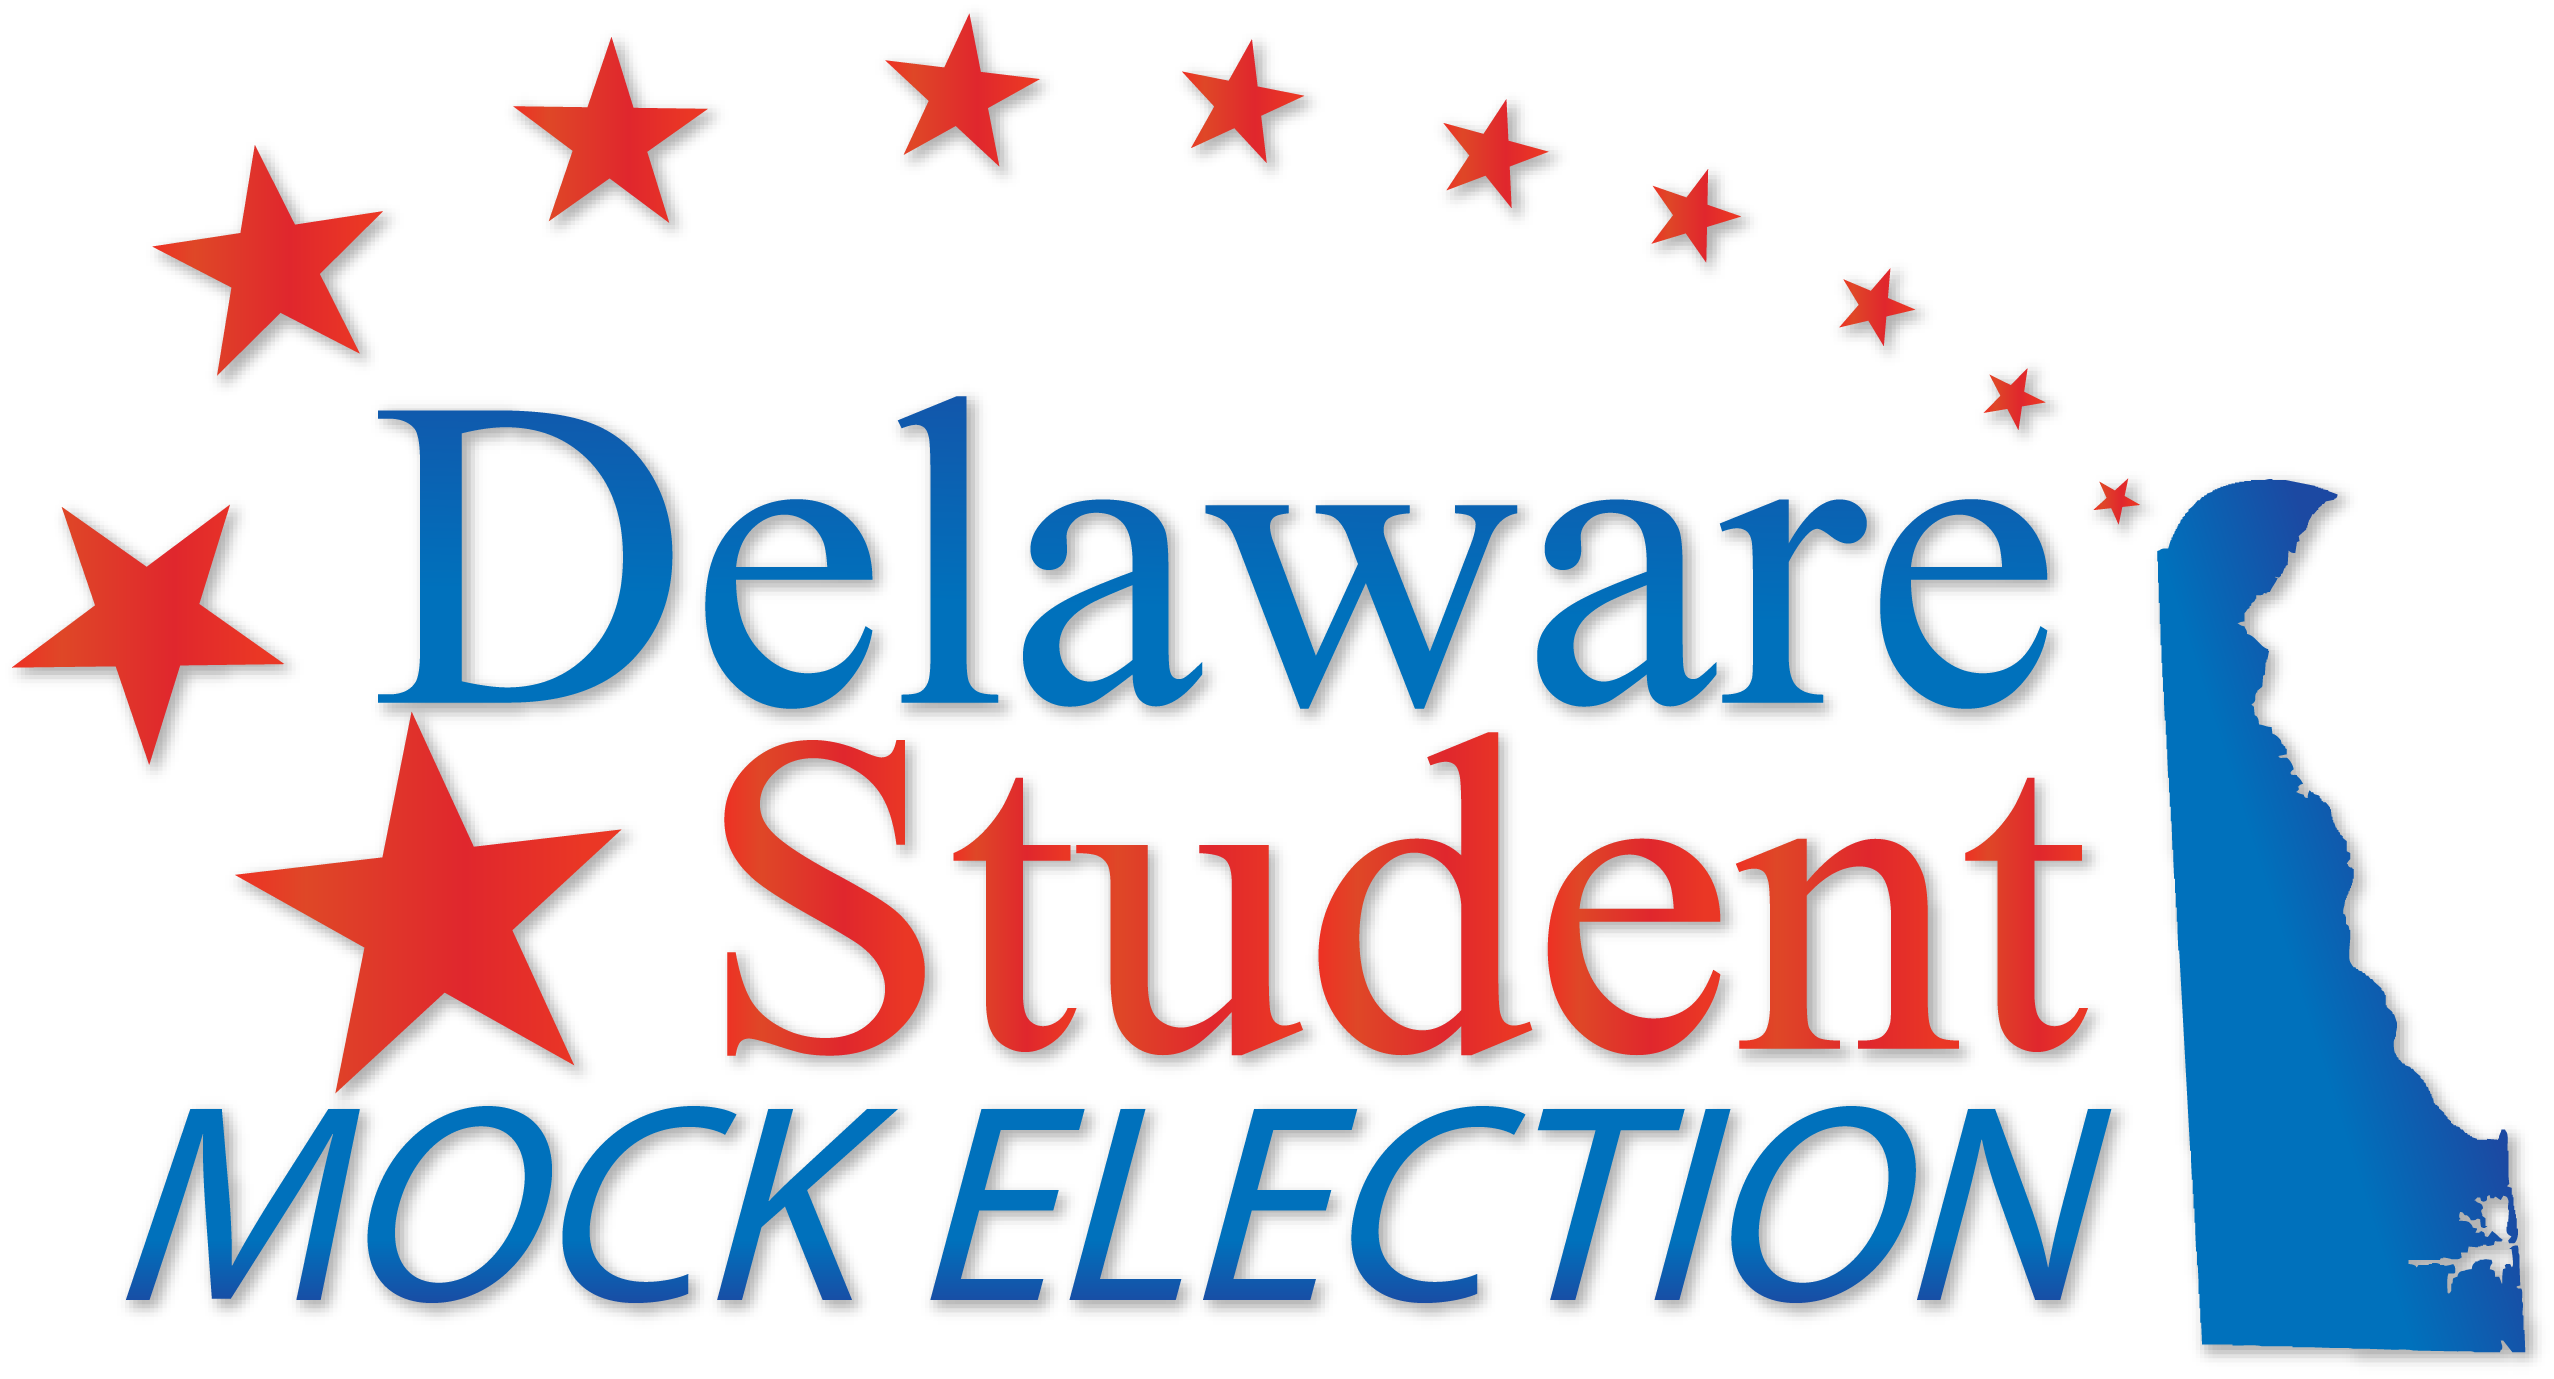 Delaware Mock Election